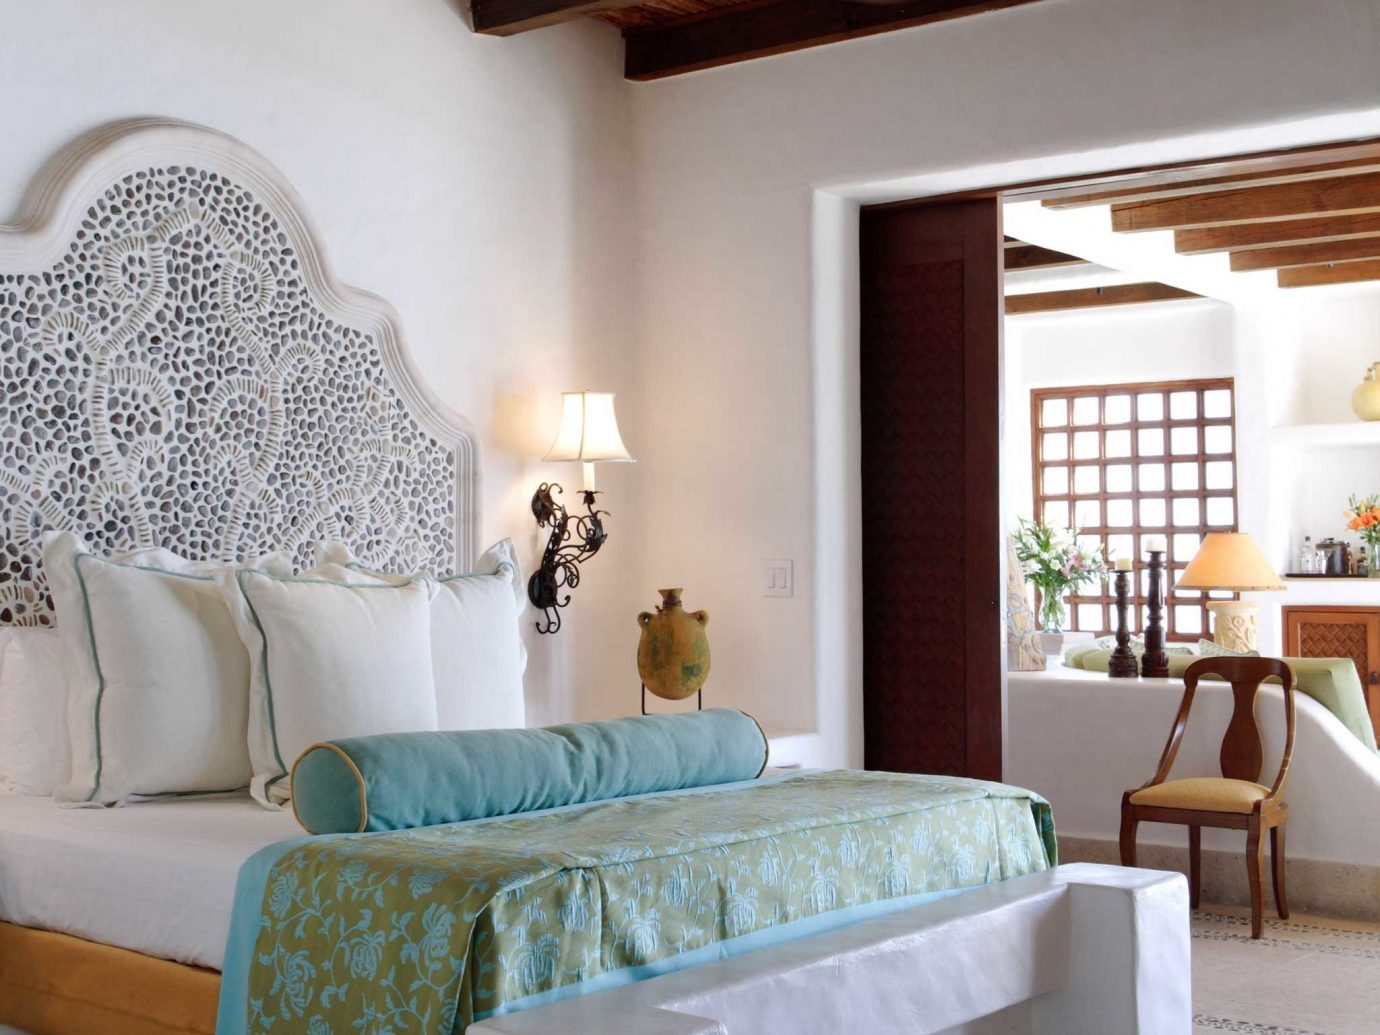 Beach Bedroom Elegant Hip Honeymoon Hotels Luxury Mexico Modern Romance Scenic views Suite Tulum indoor wall floor sofa room Living living room property ceiling home interior design hardwood estate furniture wood farmhouse cottage bed Design decorated area containing